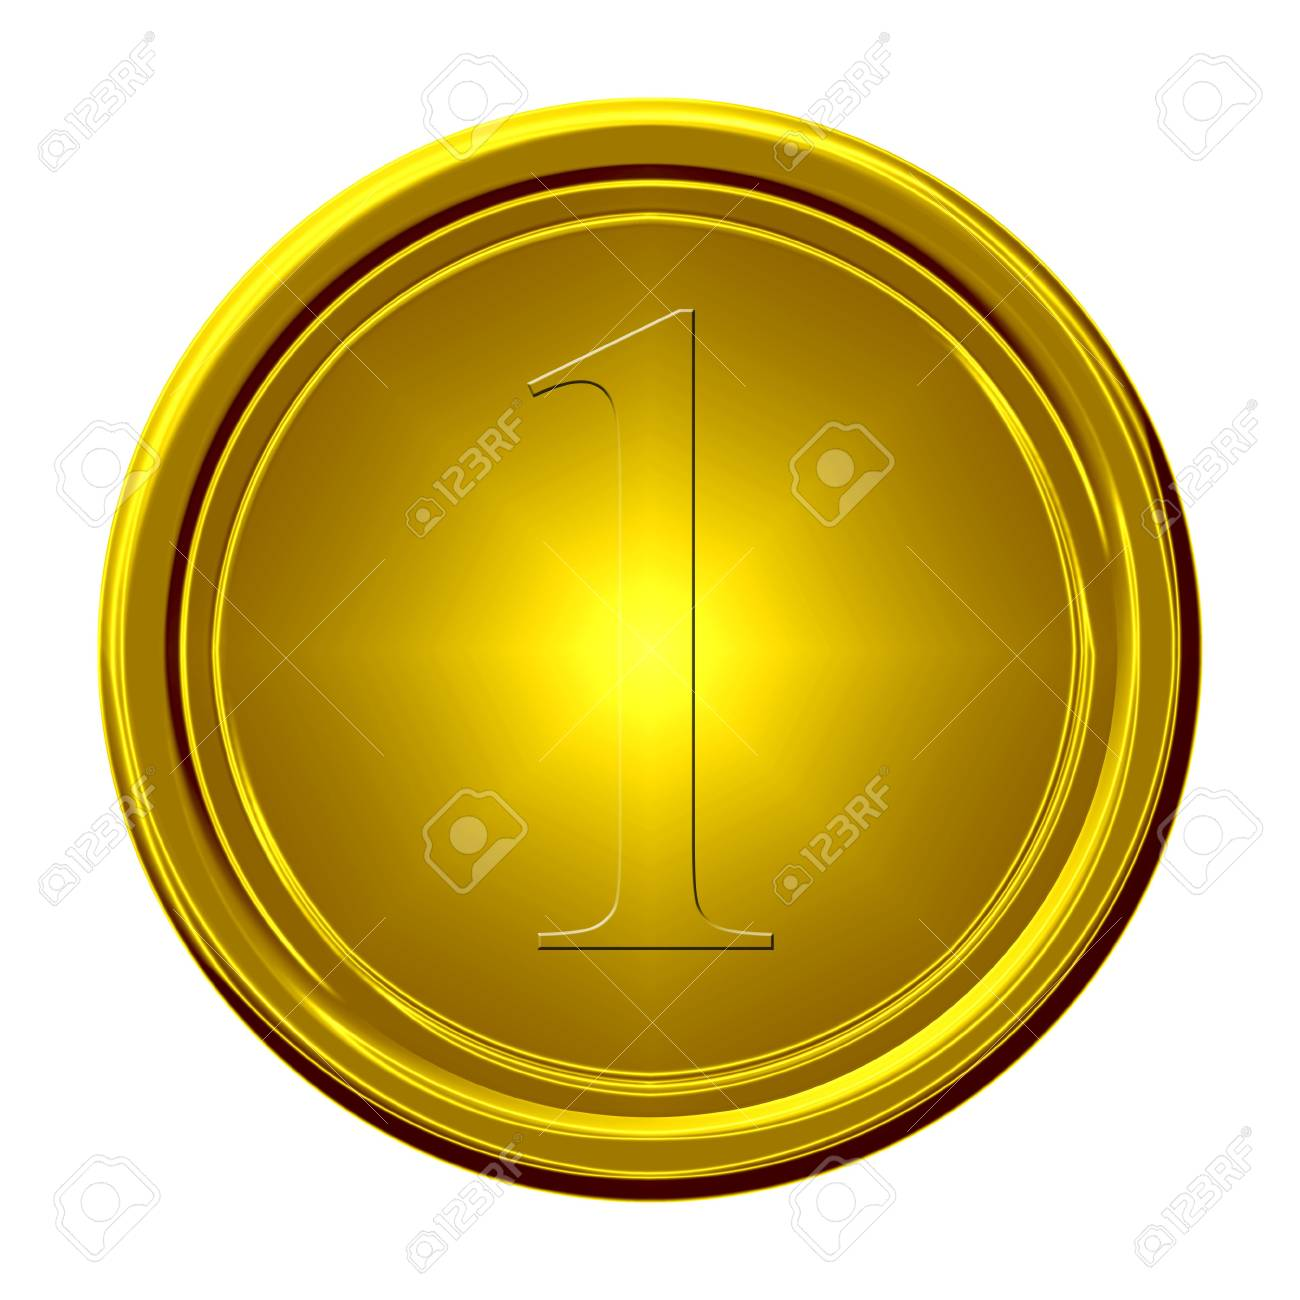 gold medal on a solid white background Stock Photo - 3201411